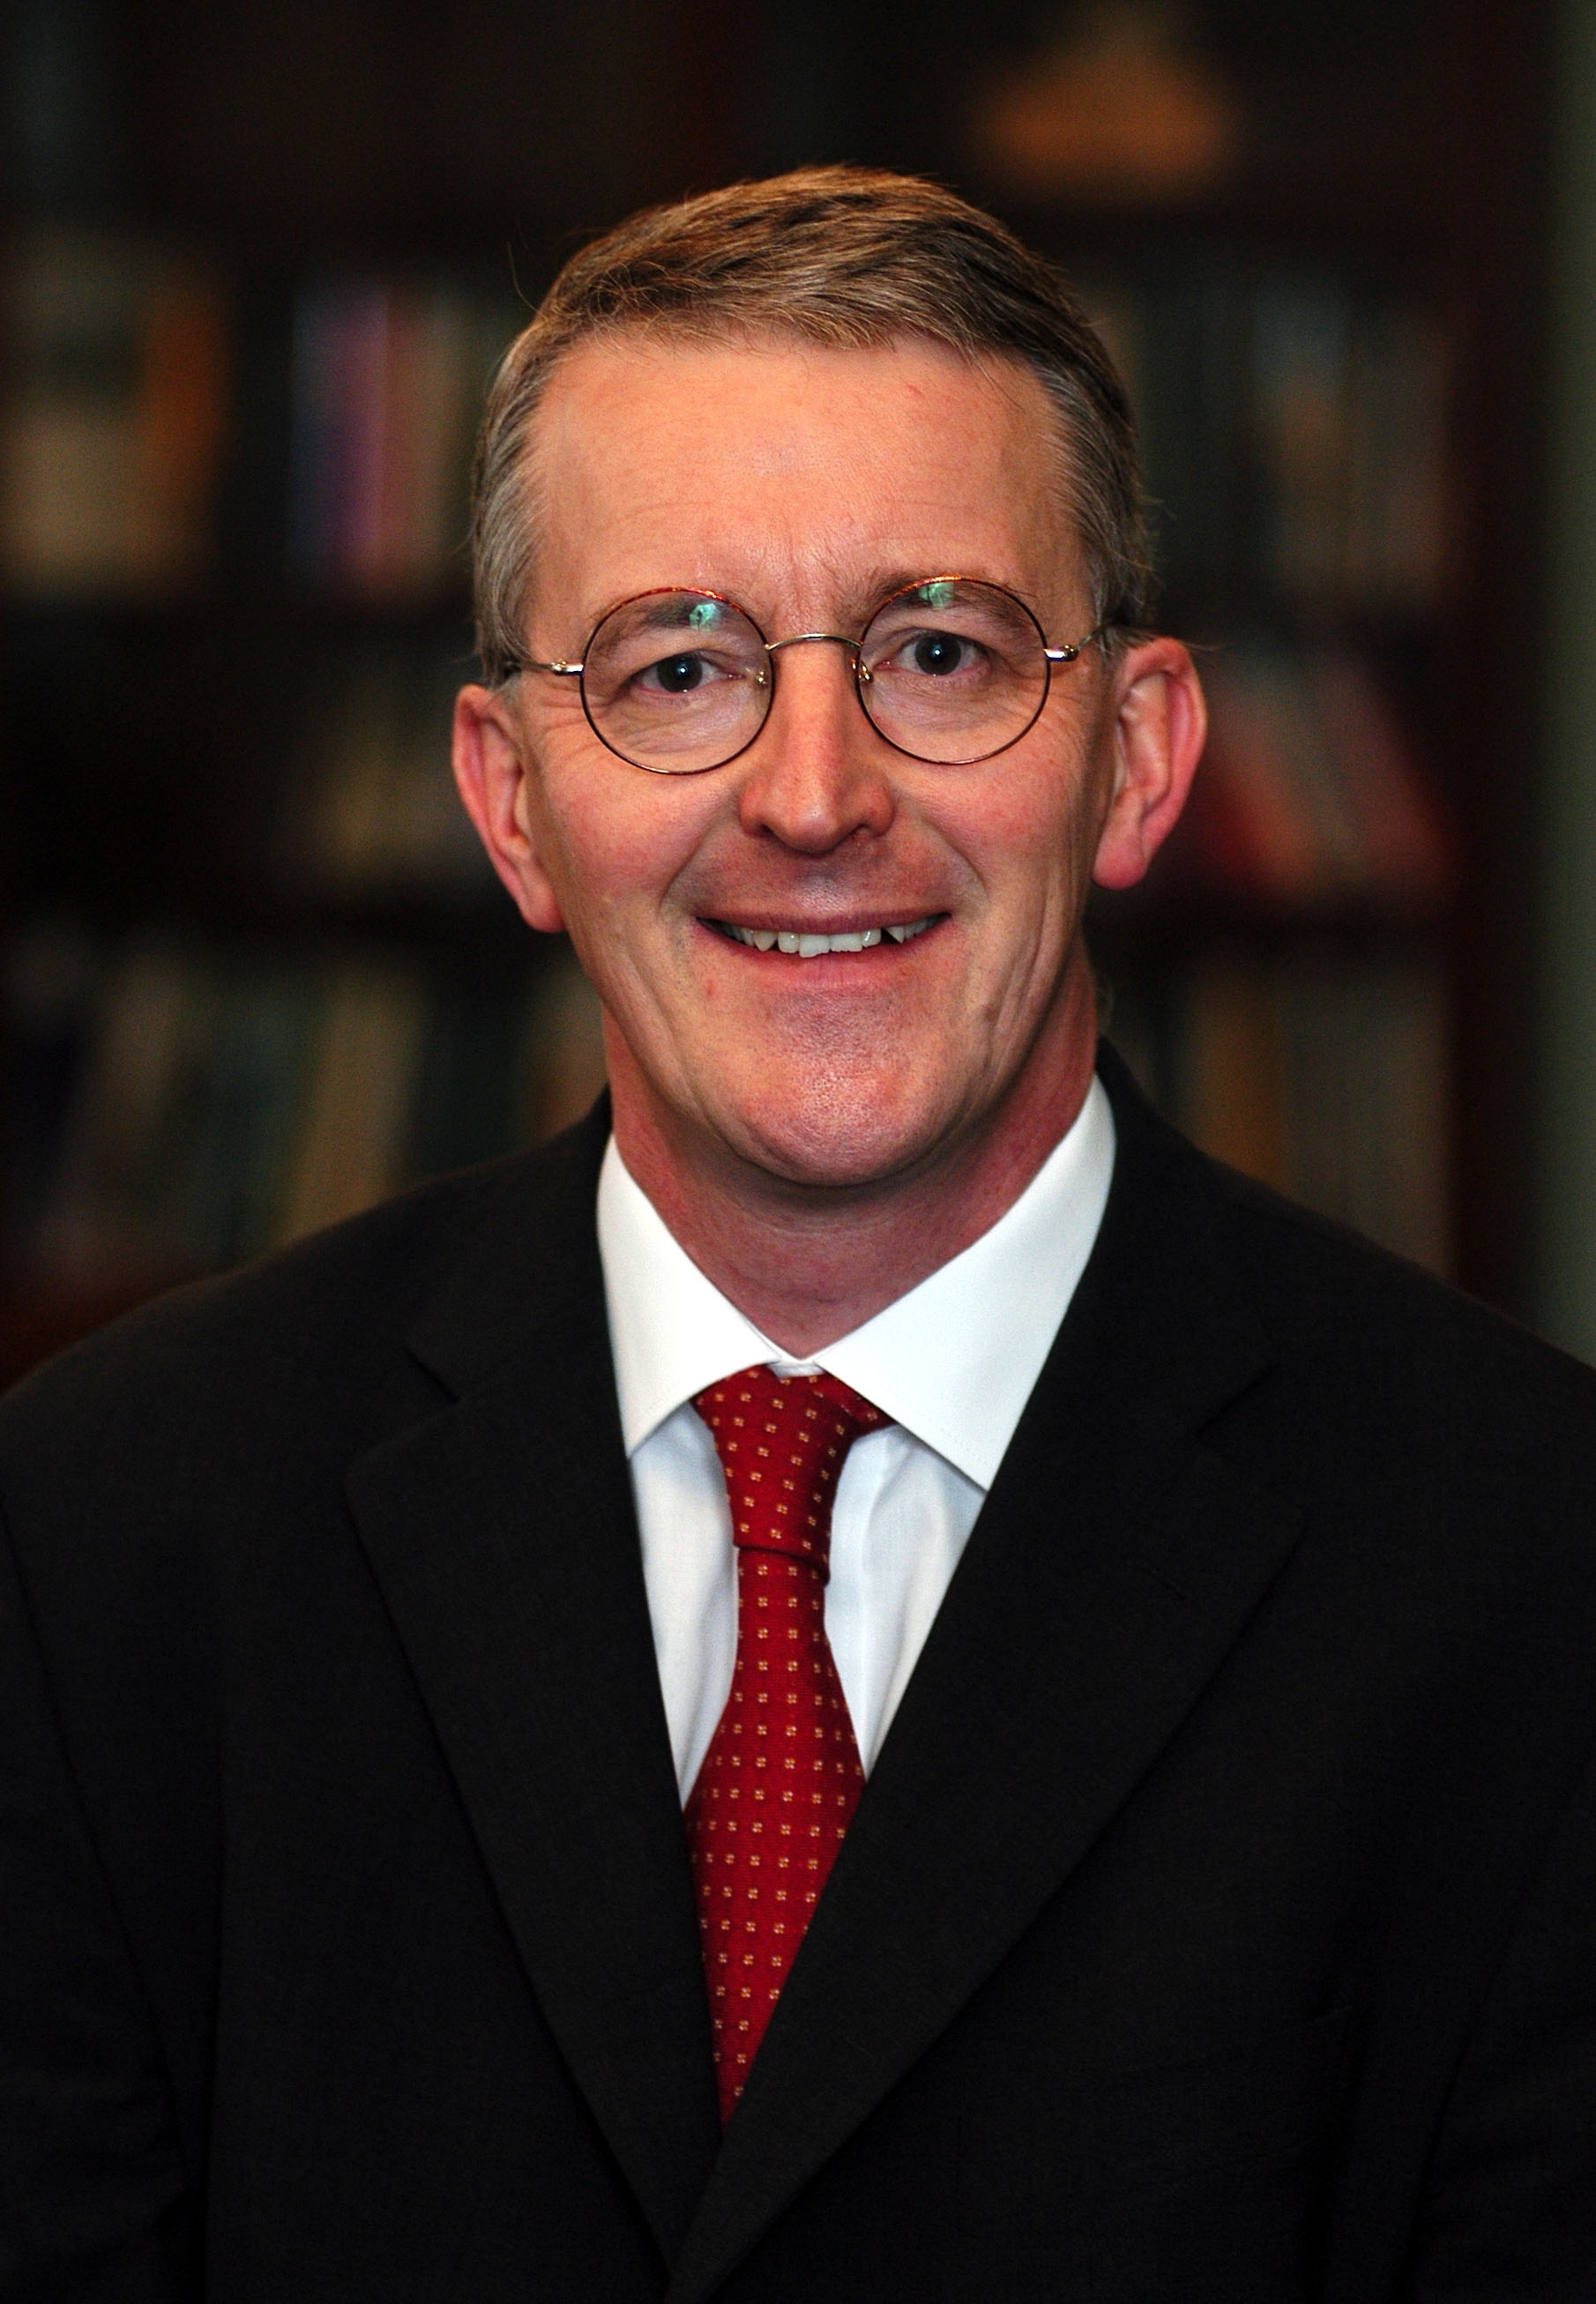 The Rt Hon Hilary Benn MP